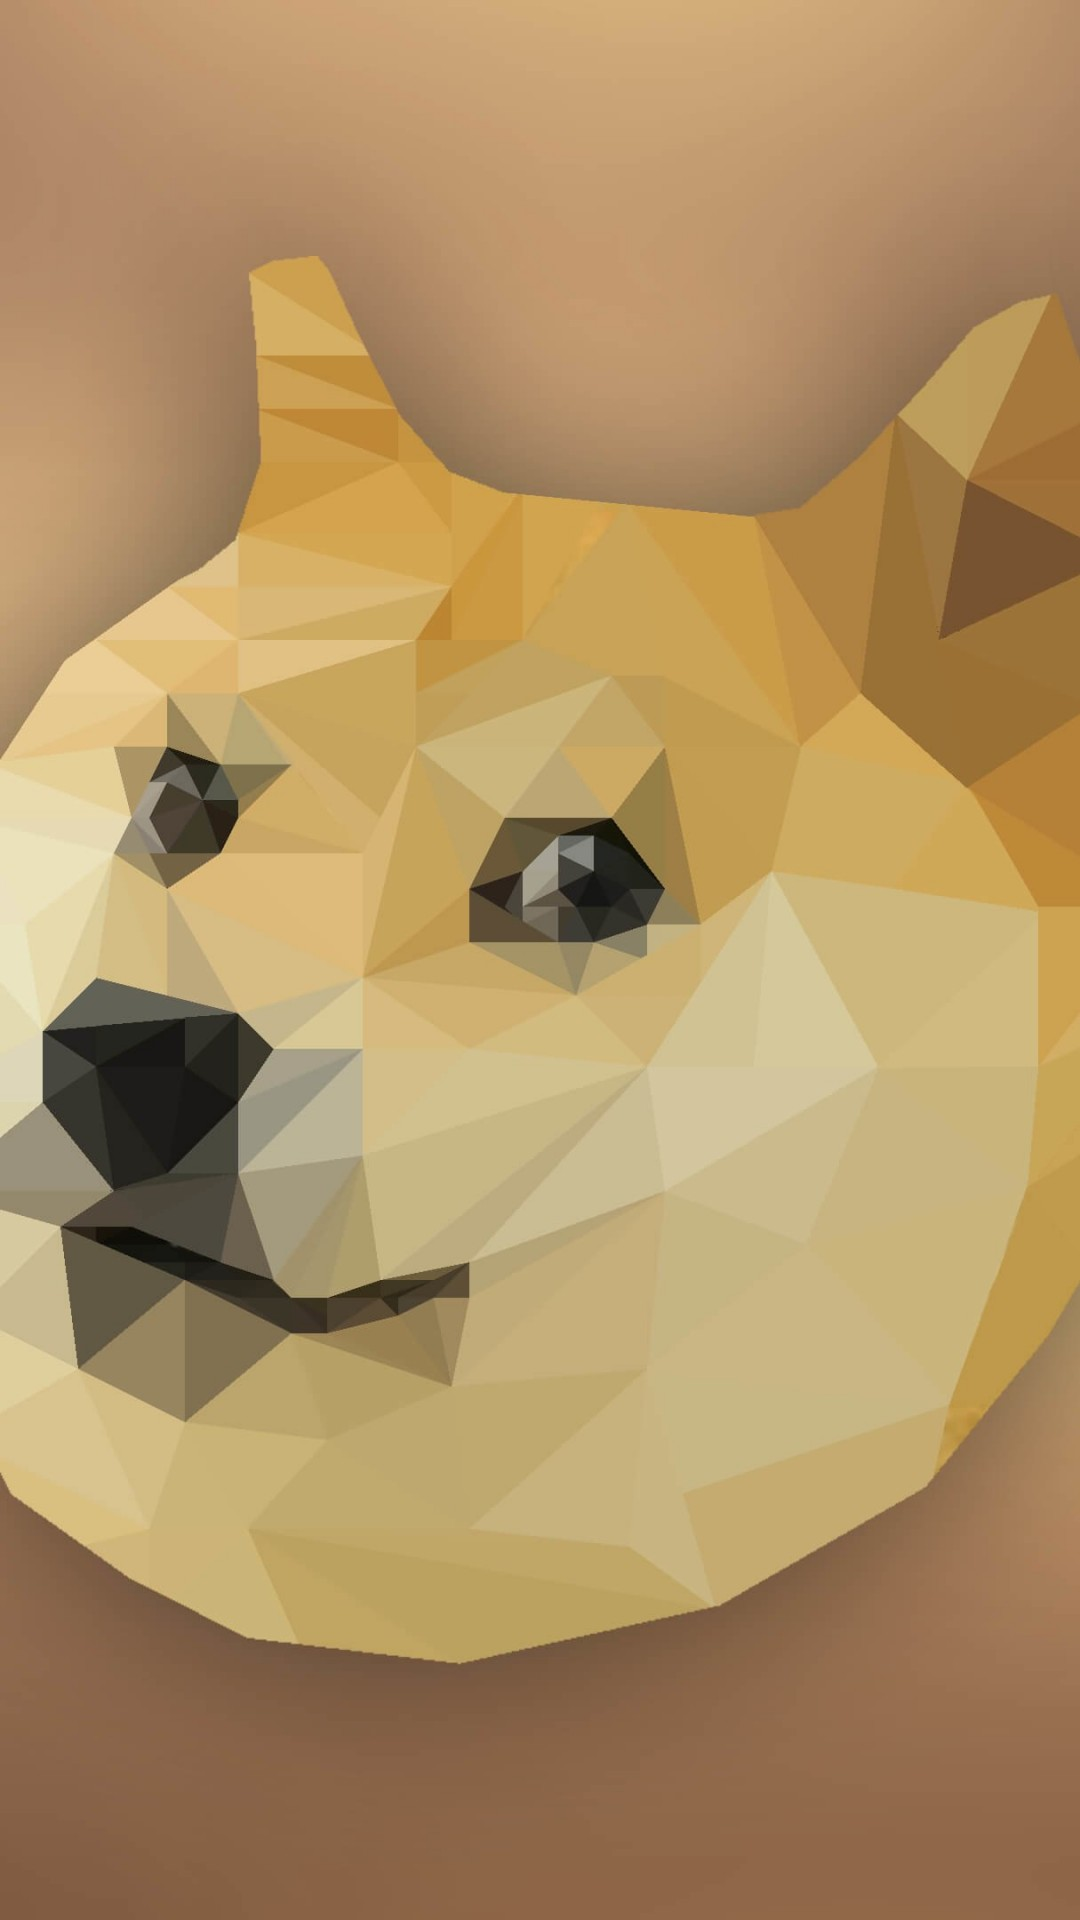 Low Poly Doge Wallpaper for SONY Xperia Z2